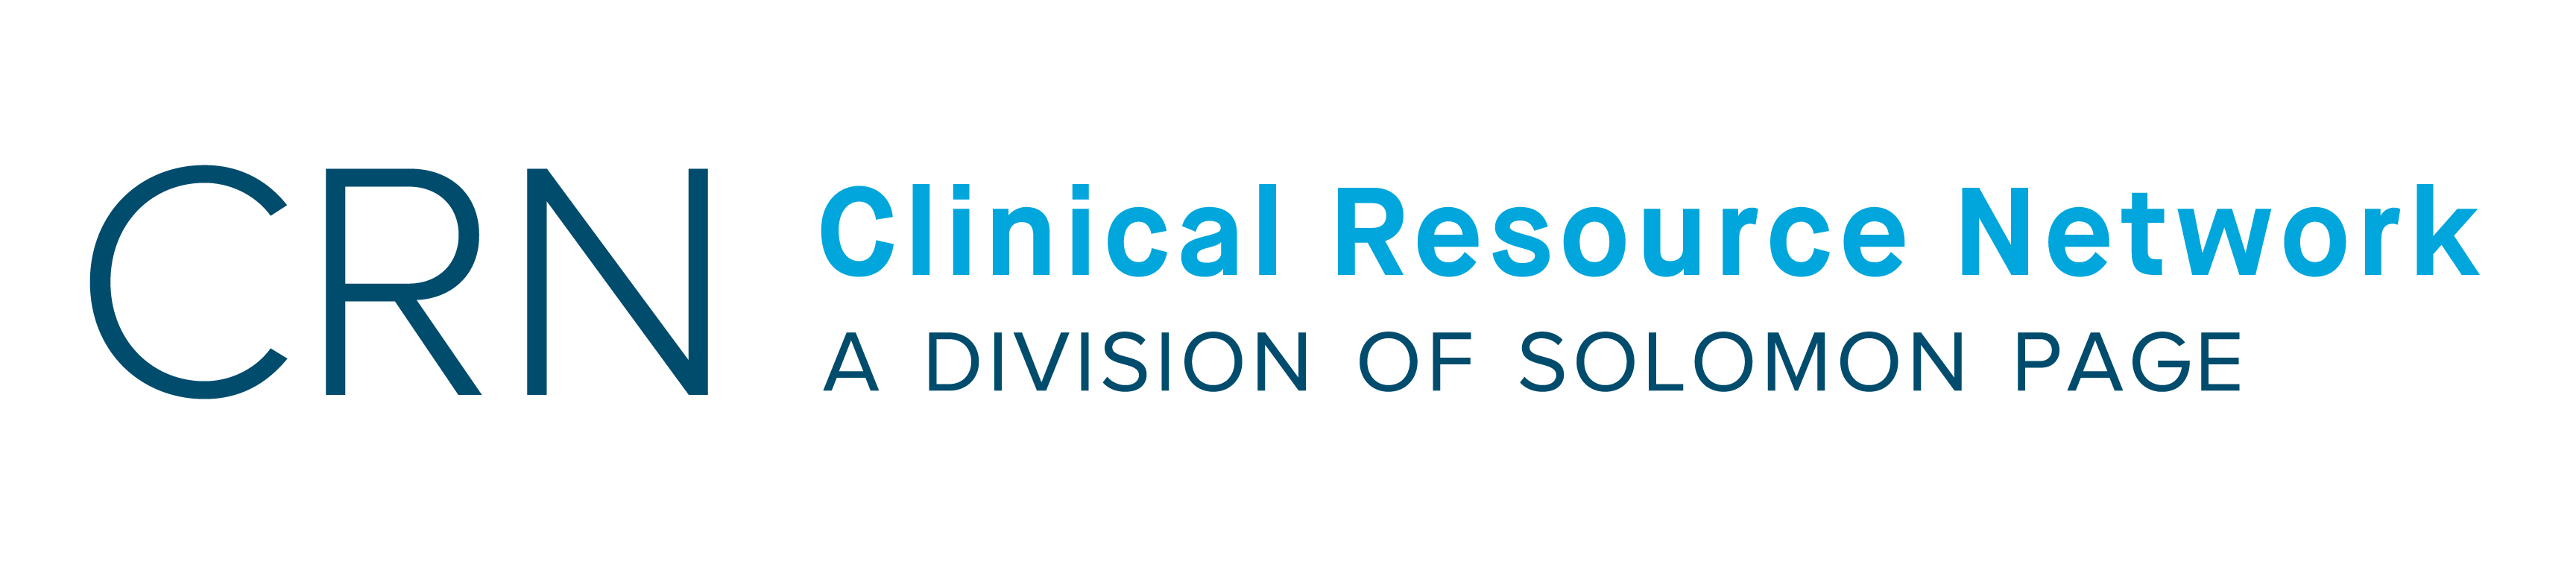 Clinical Resource Network